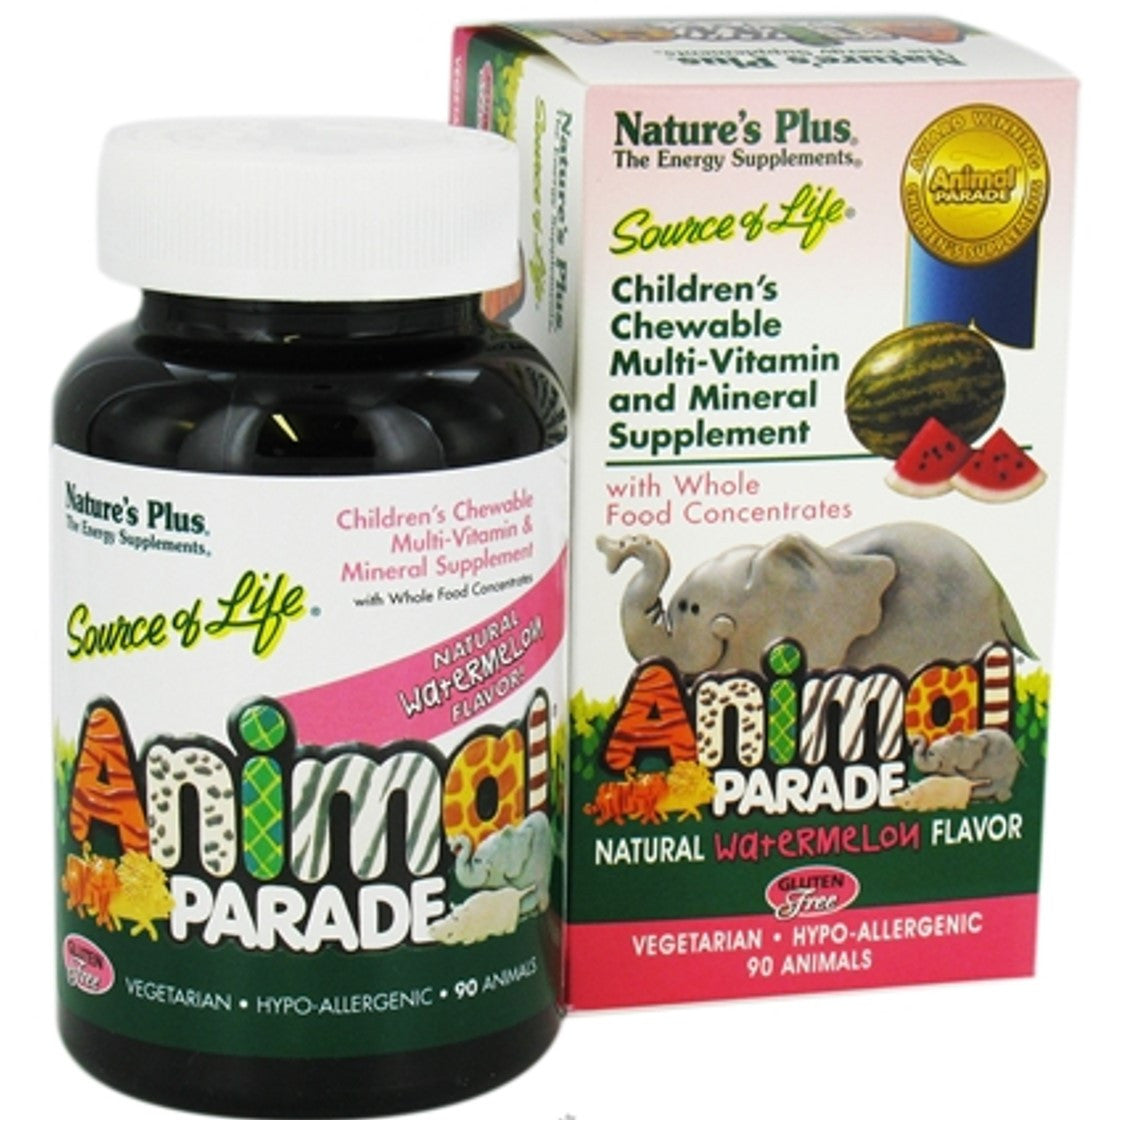 Natures Plus Source of Life Animal Parade Multi-Vitamin & Mineral (Water Melon), 90 tabs.